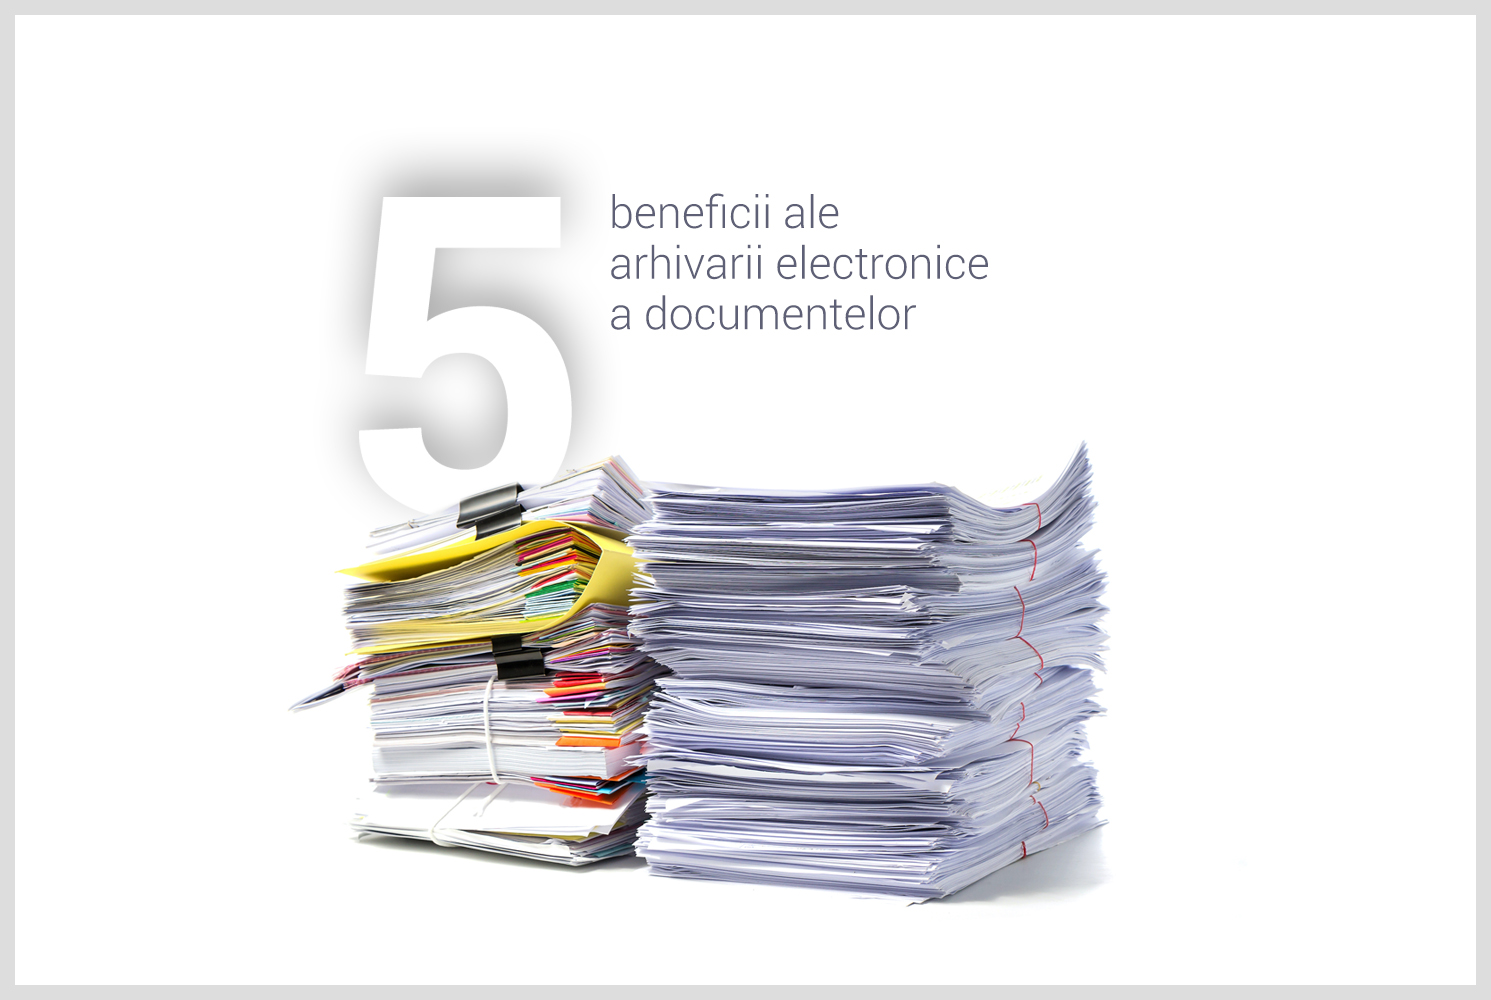 5 beneficii ale arhivarii electronice a documentelor